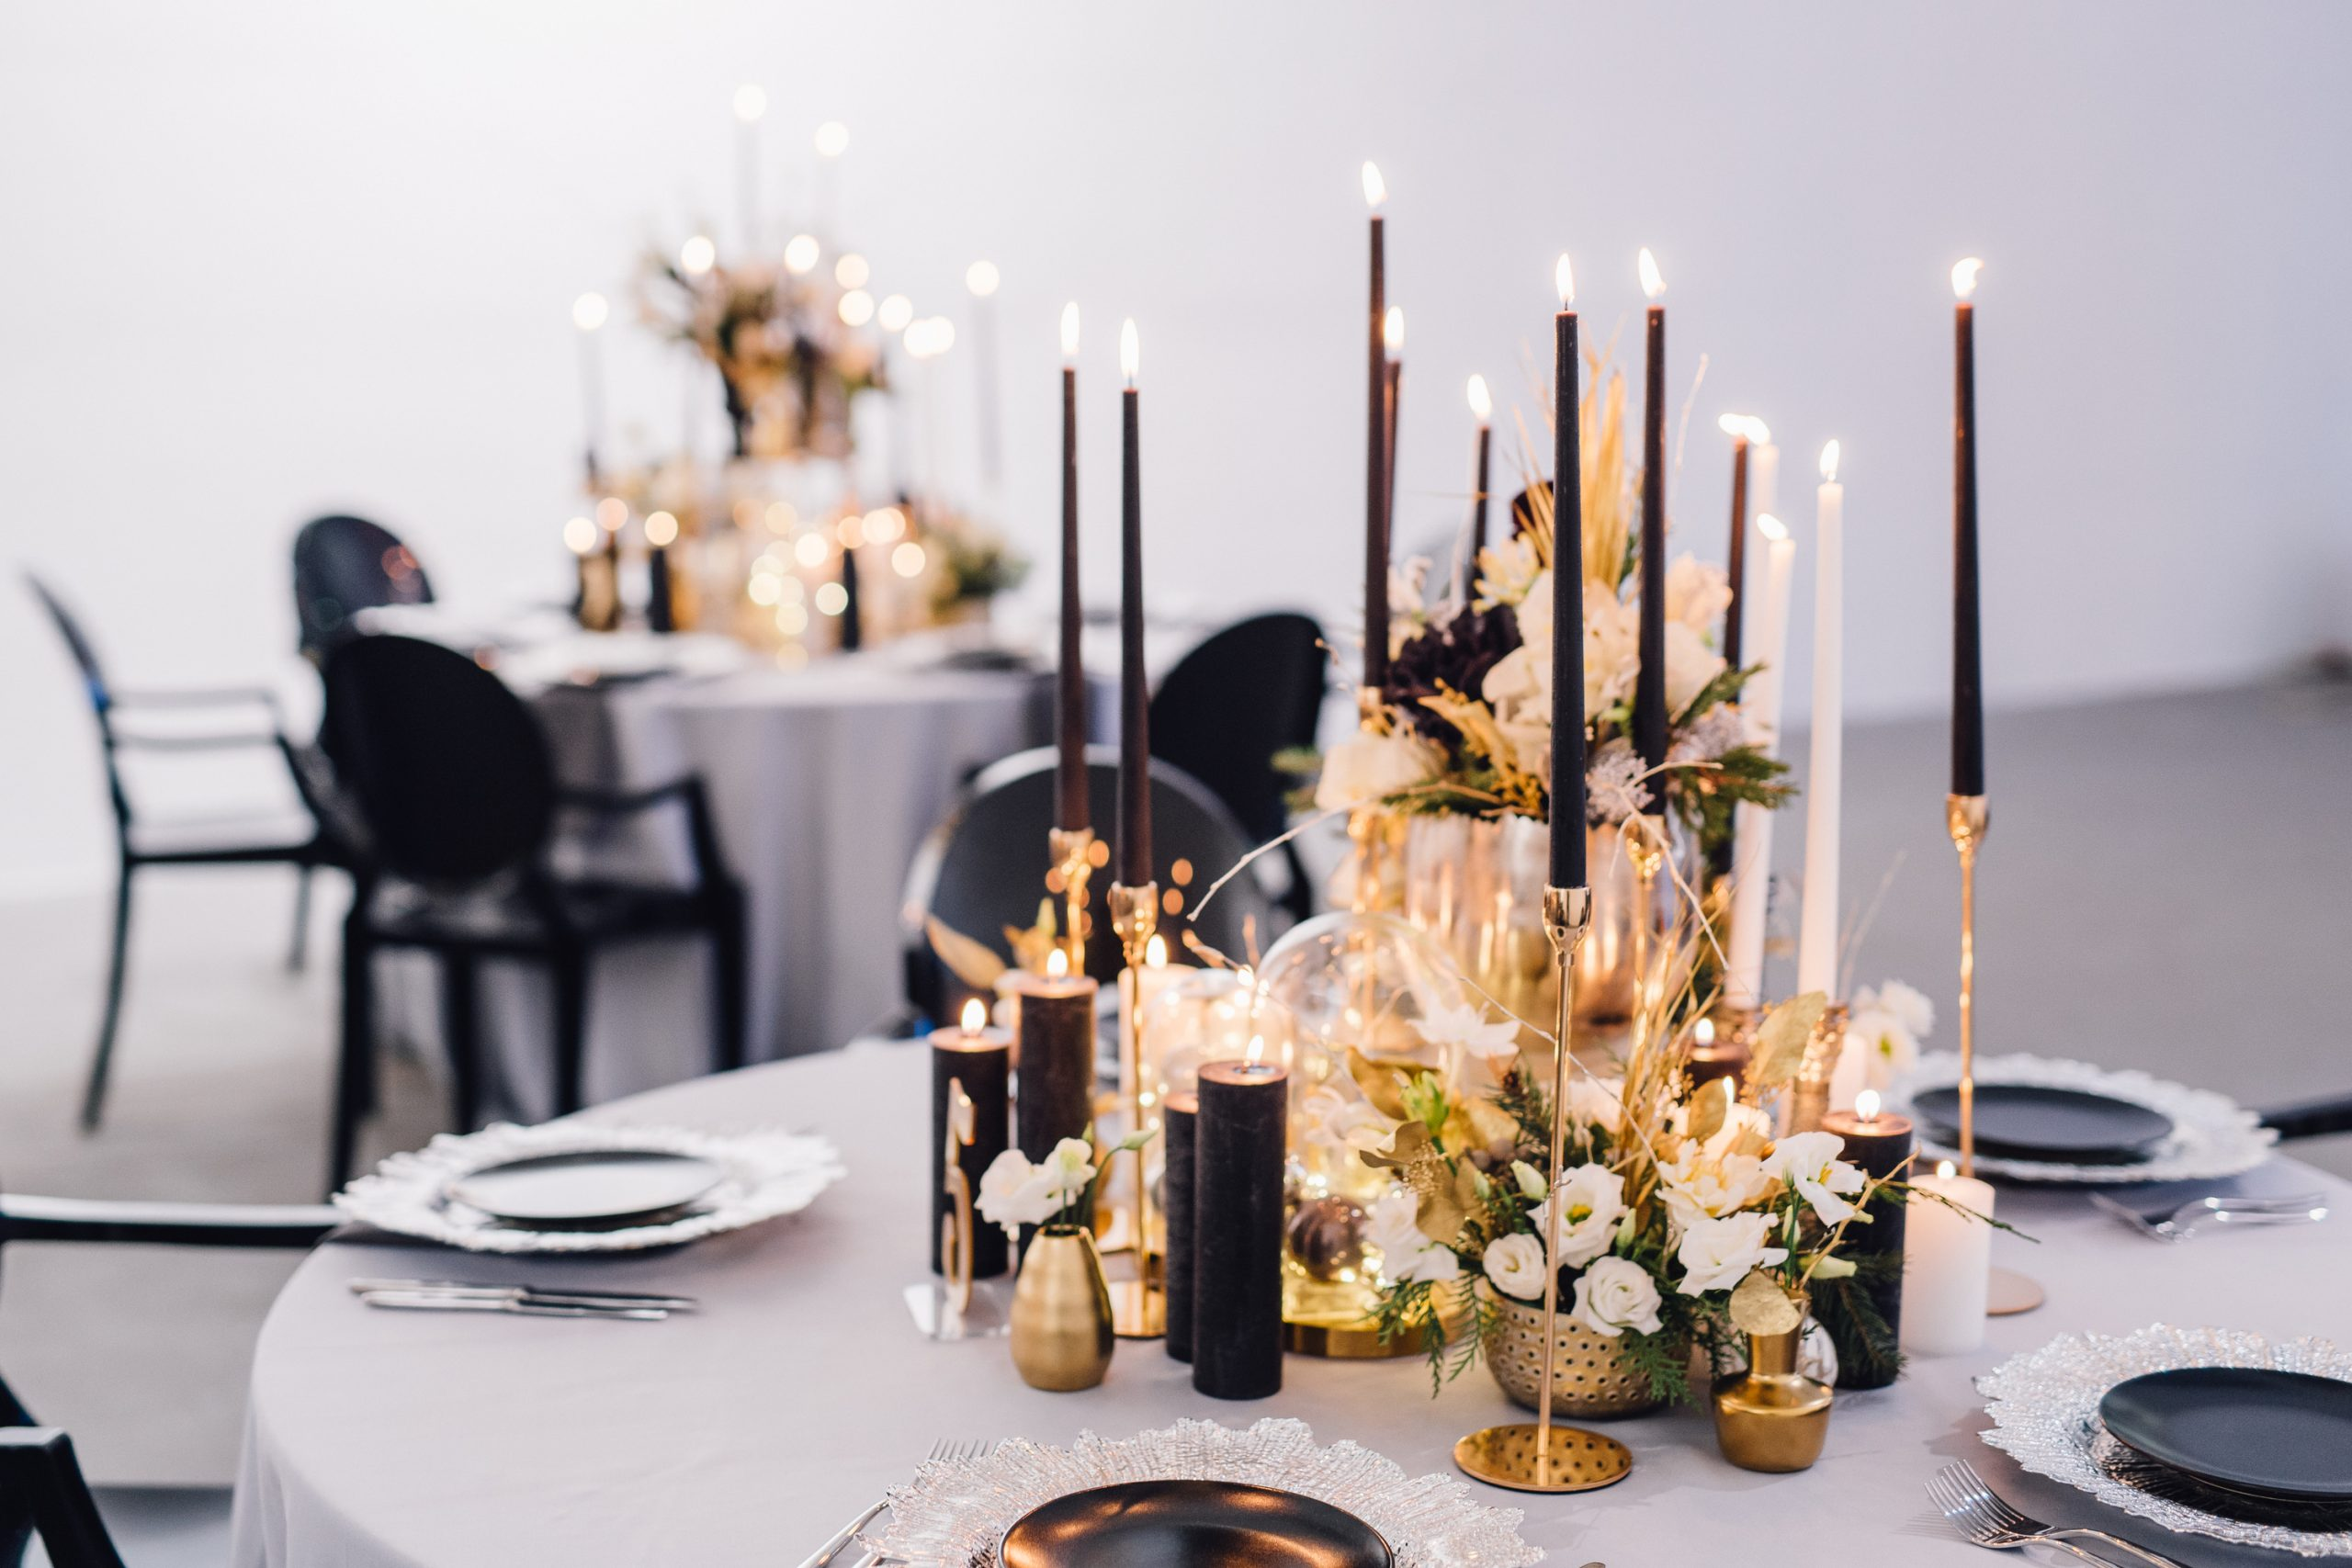 Are you throwing a masquerade party for New Years Eve? Here are the best food options for a masquerade party.